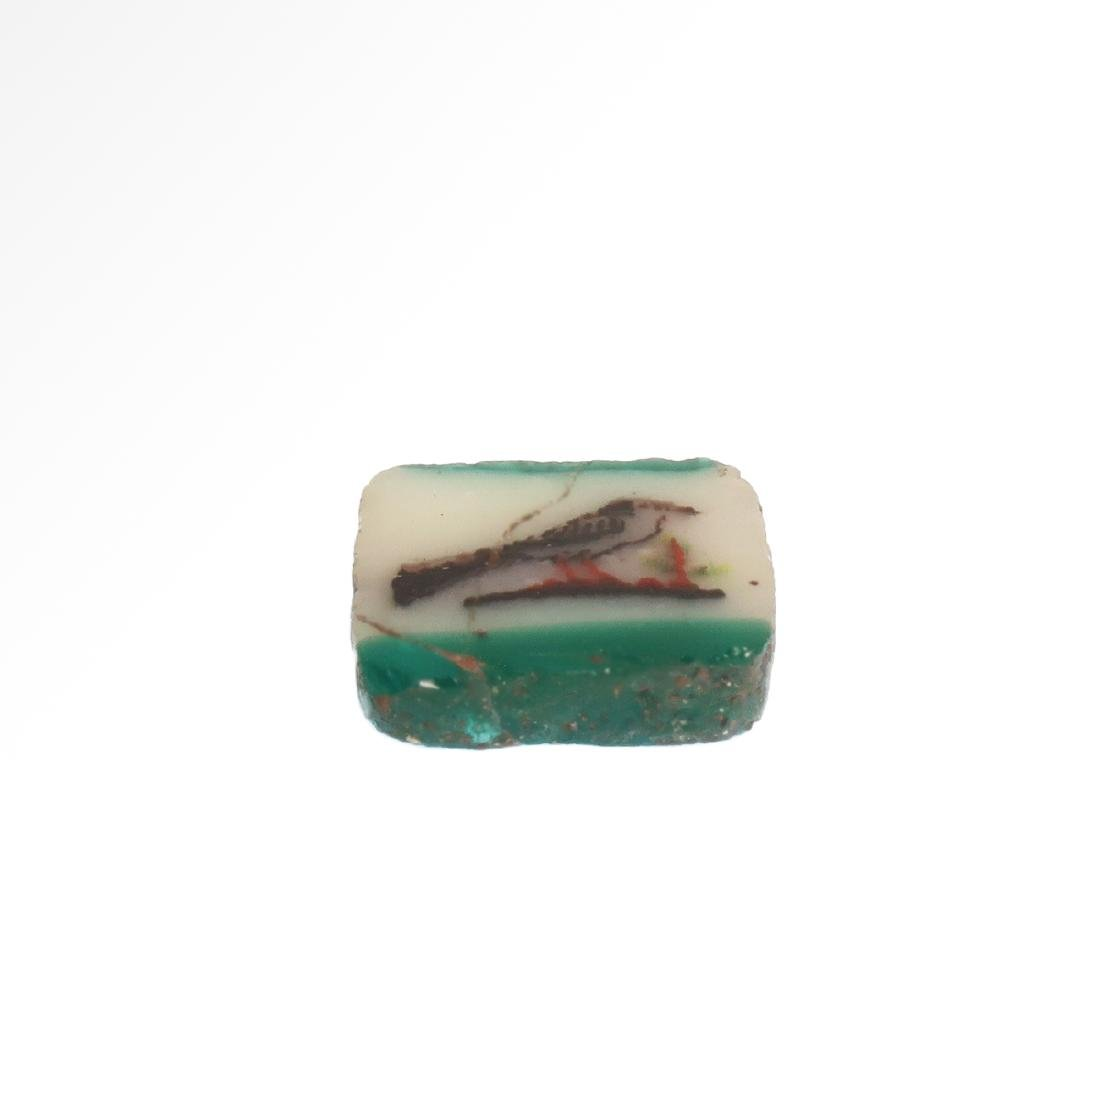 Egyptian Mosaic Glass Plaque Inlay with Swallow Bird - 3